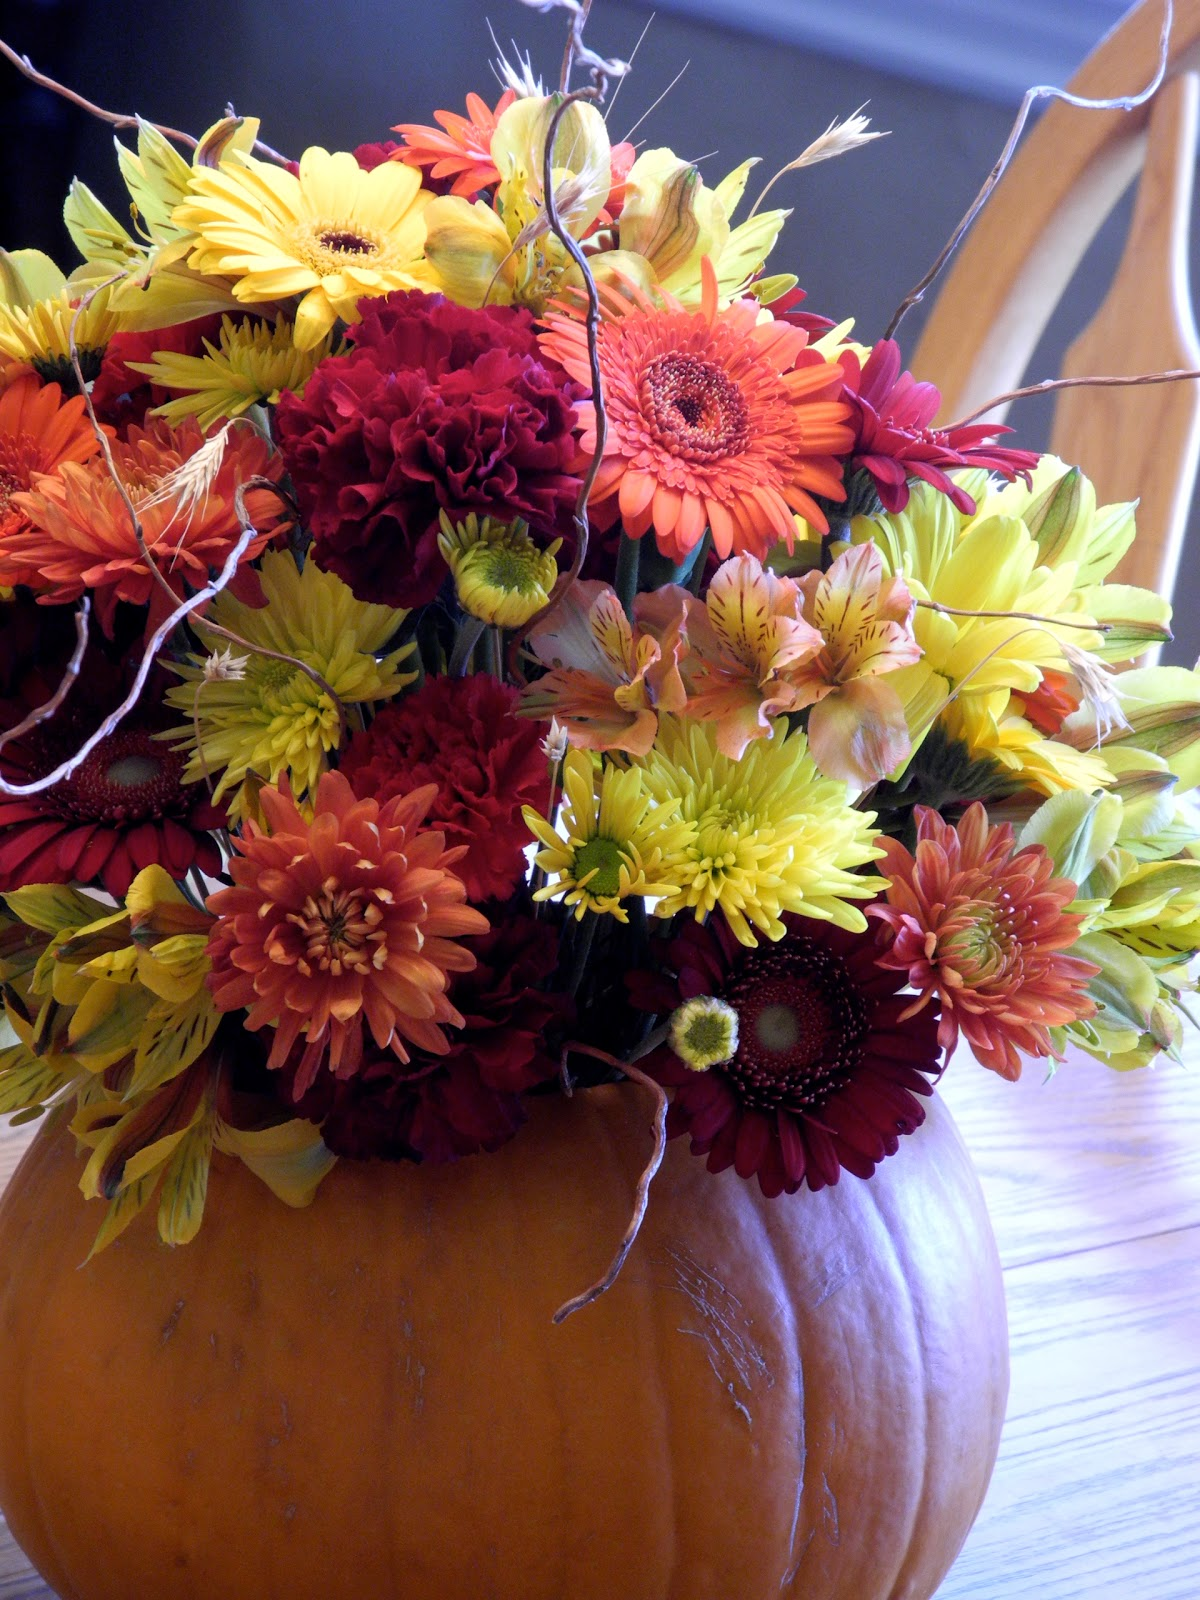 Fall Flowers And Pumpkins Wallpaper The Flower Girl Blog Fall Flowers And A Pumpkin